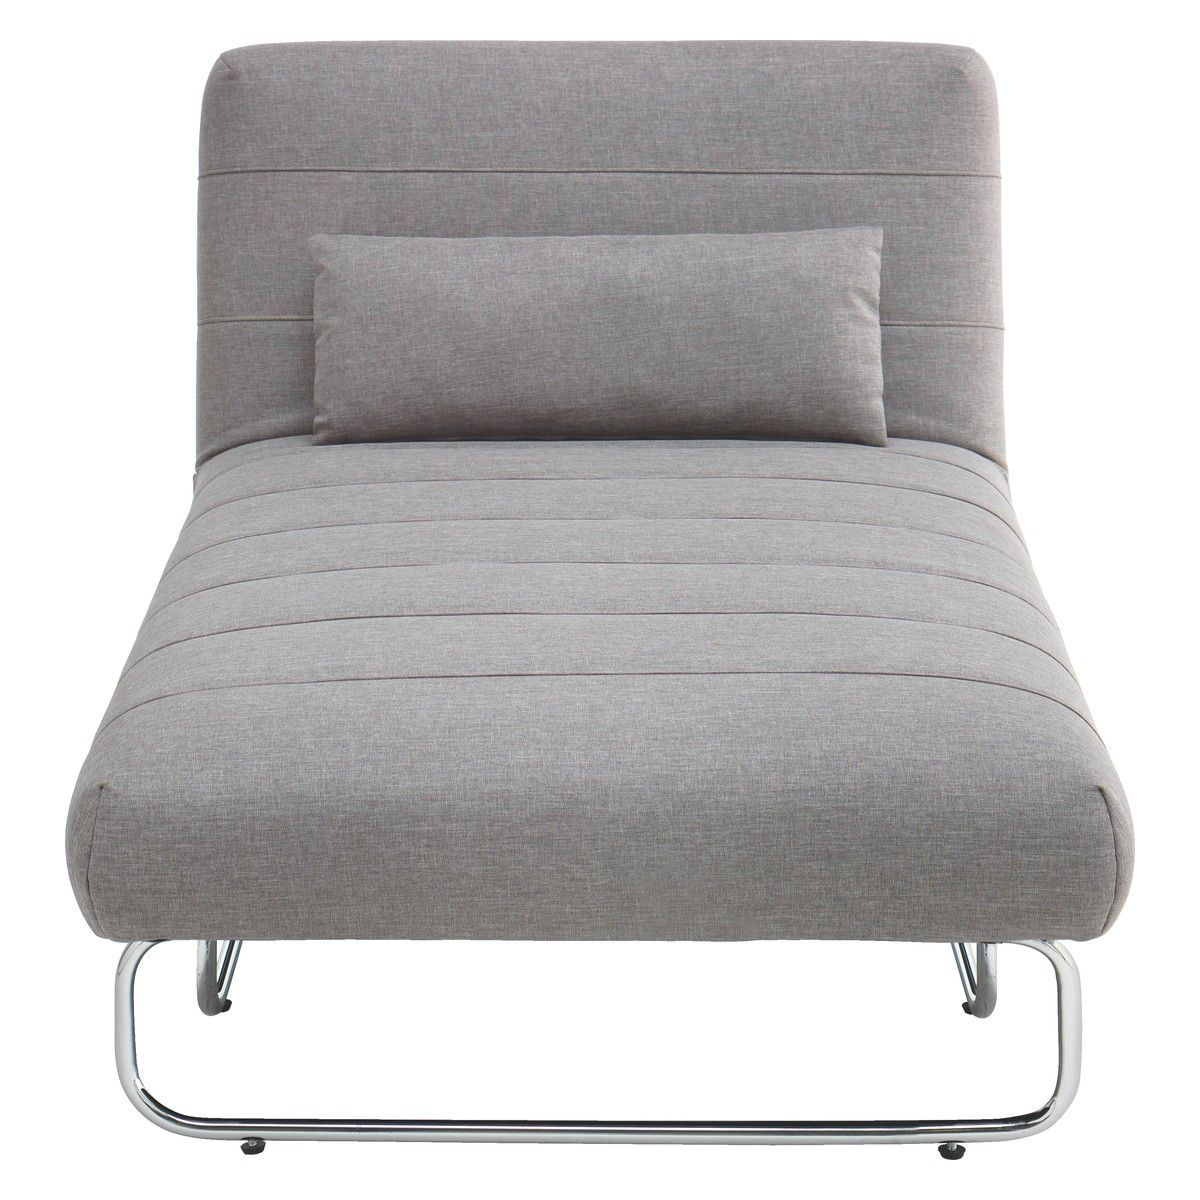 SIBU Grey Fabric Chaise Sofa Bed | Buy Now At Habitat UK | Spare